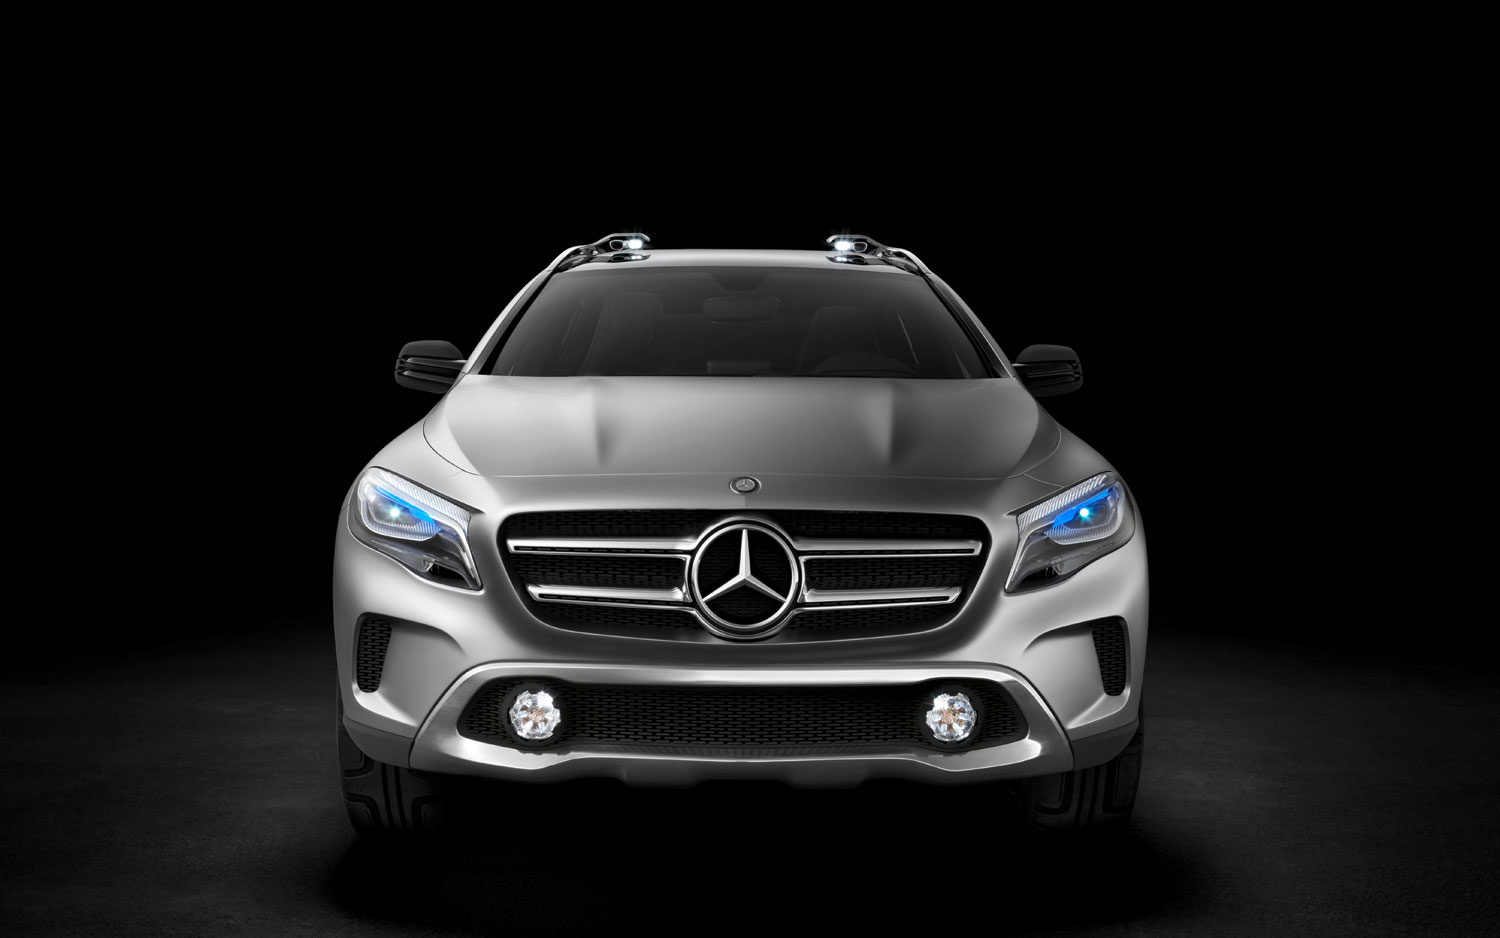 Mercedes Benz GLA Concept Will Be Produced Locally